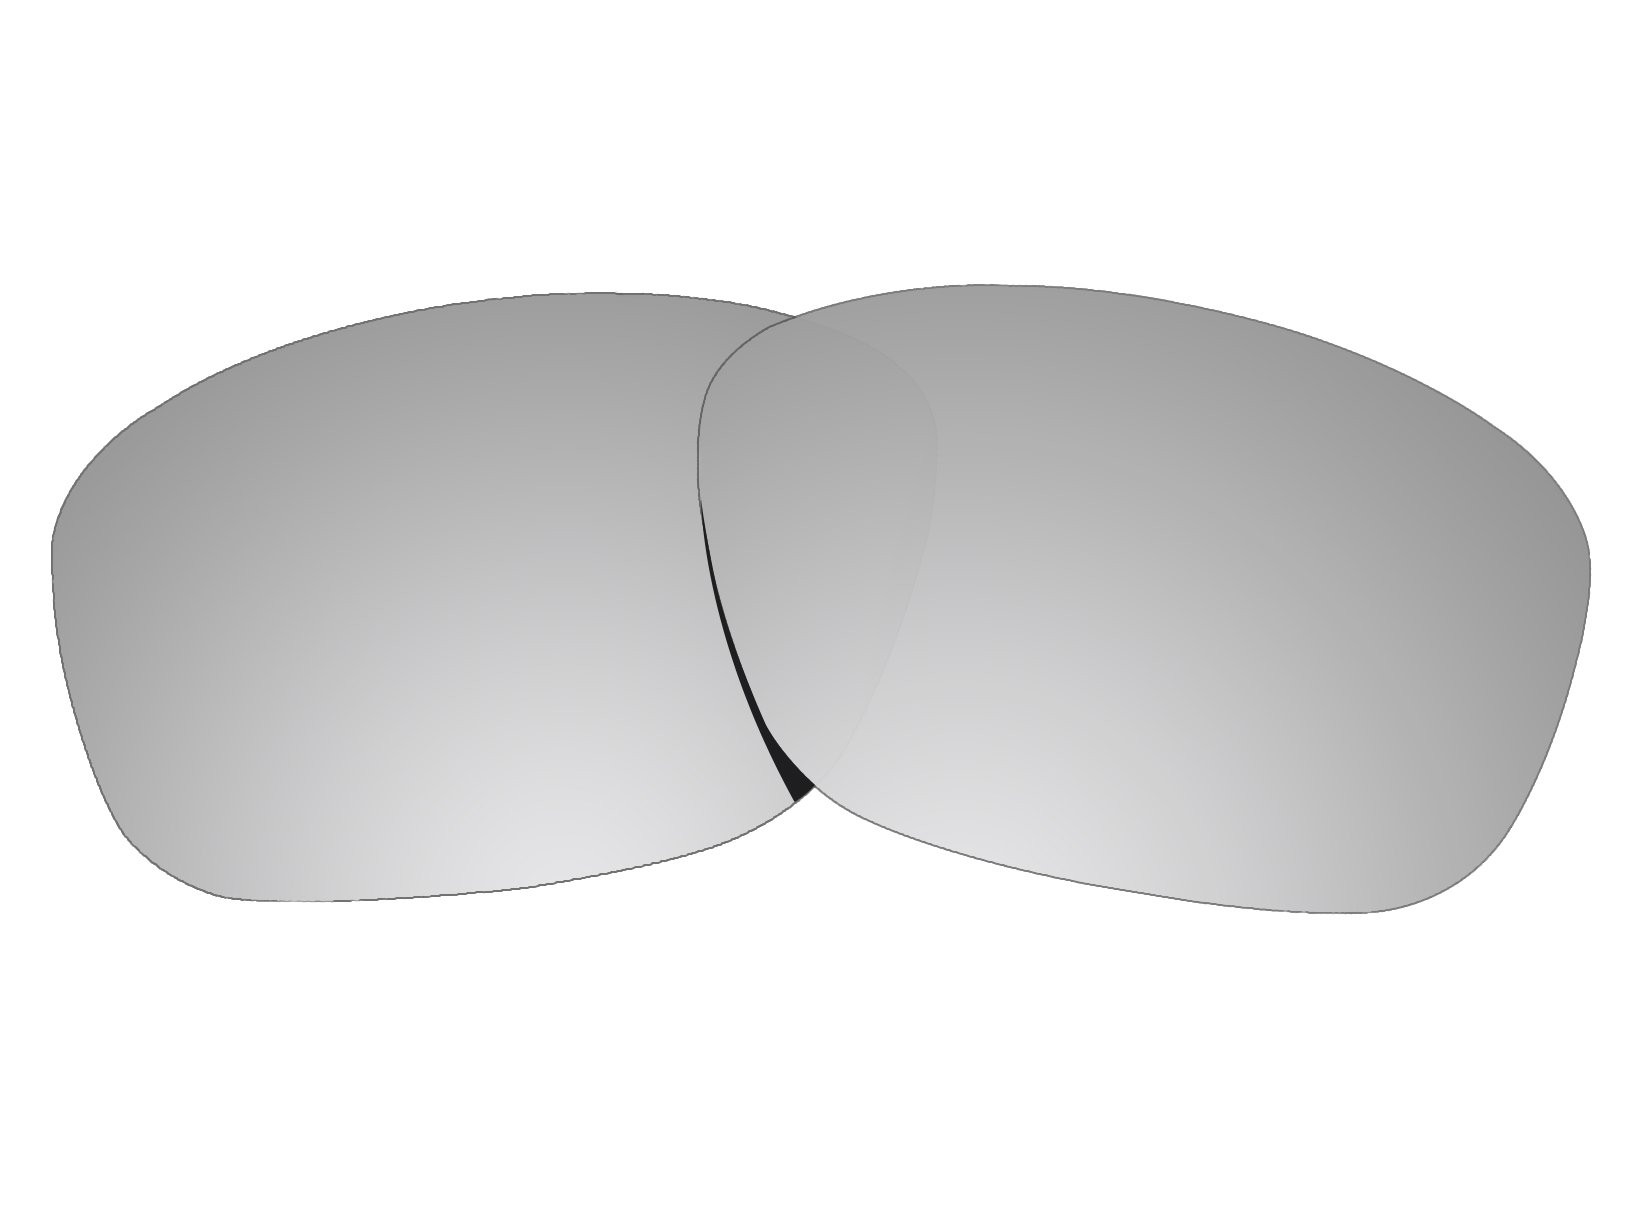 COLOR STAY LENSES 2.0mm Thickness Polarized Replacement Lenses for Oakley Sanctuary OO4116 Titanium Mirror Coatings